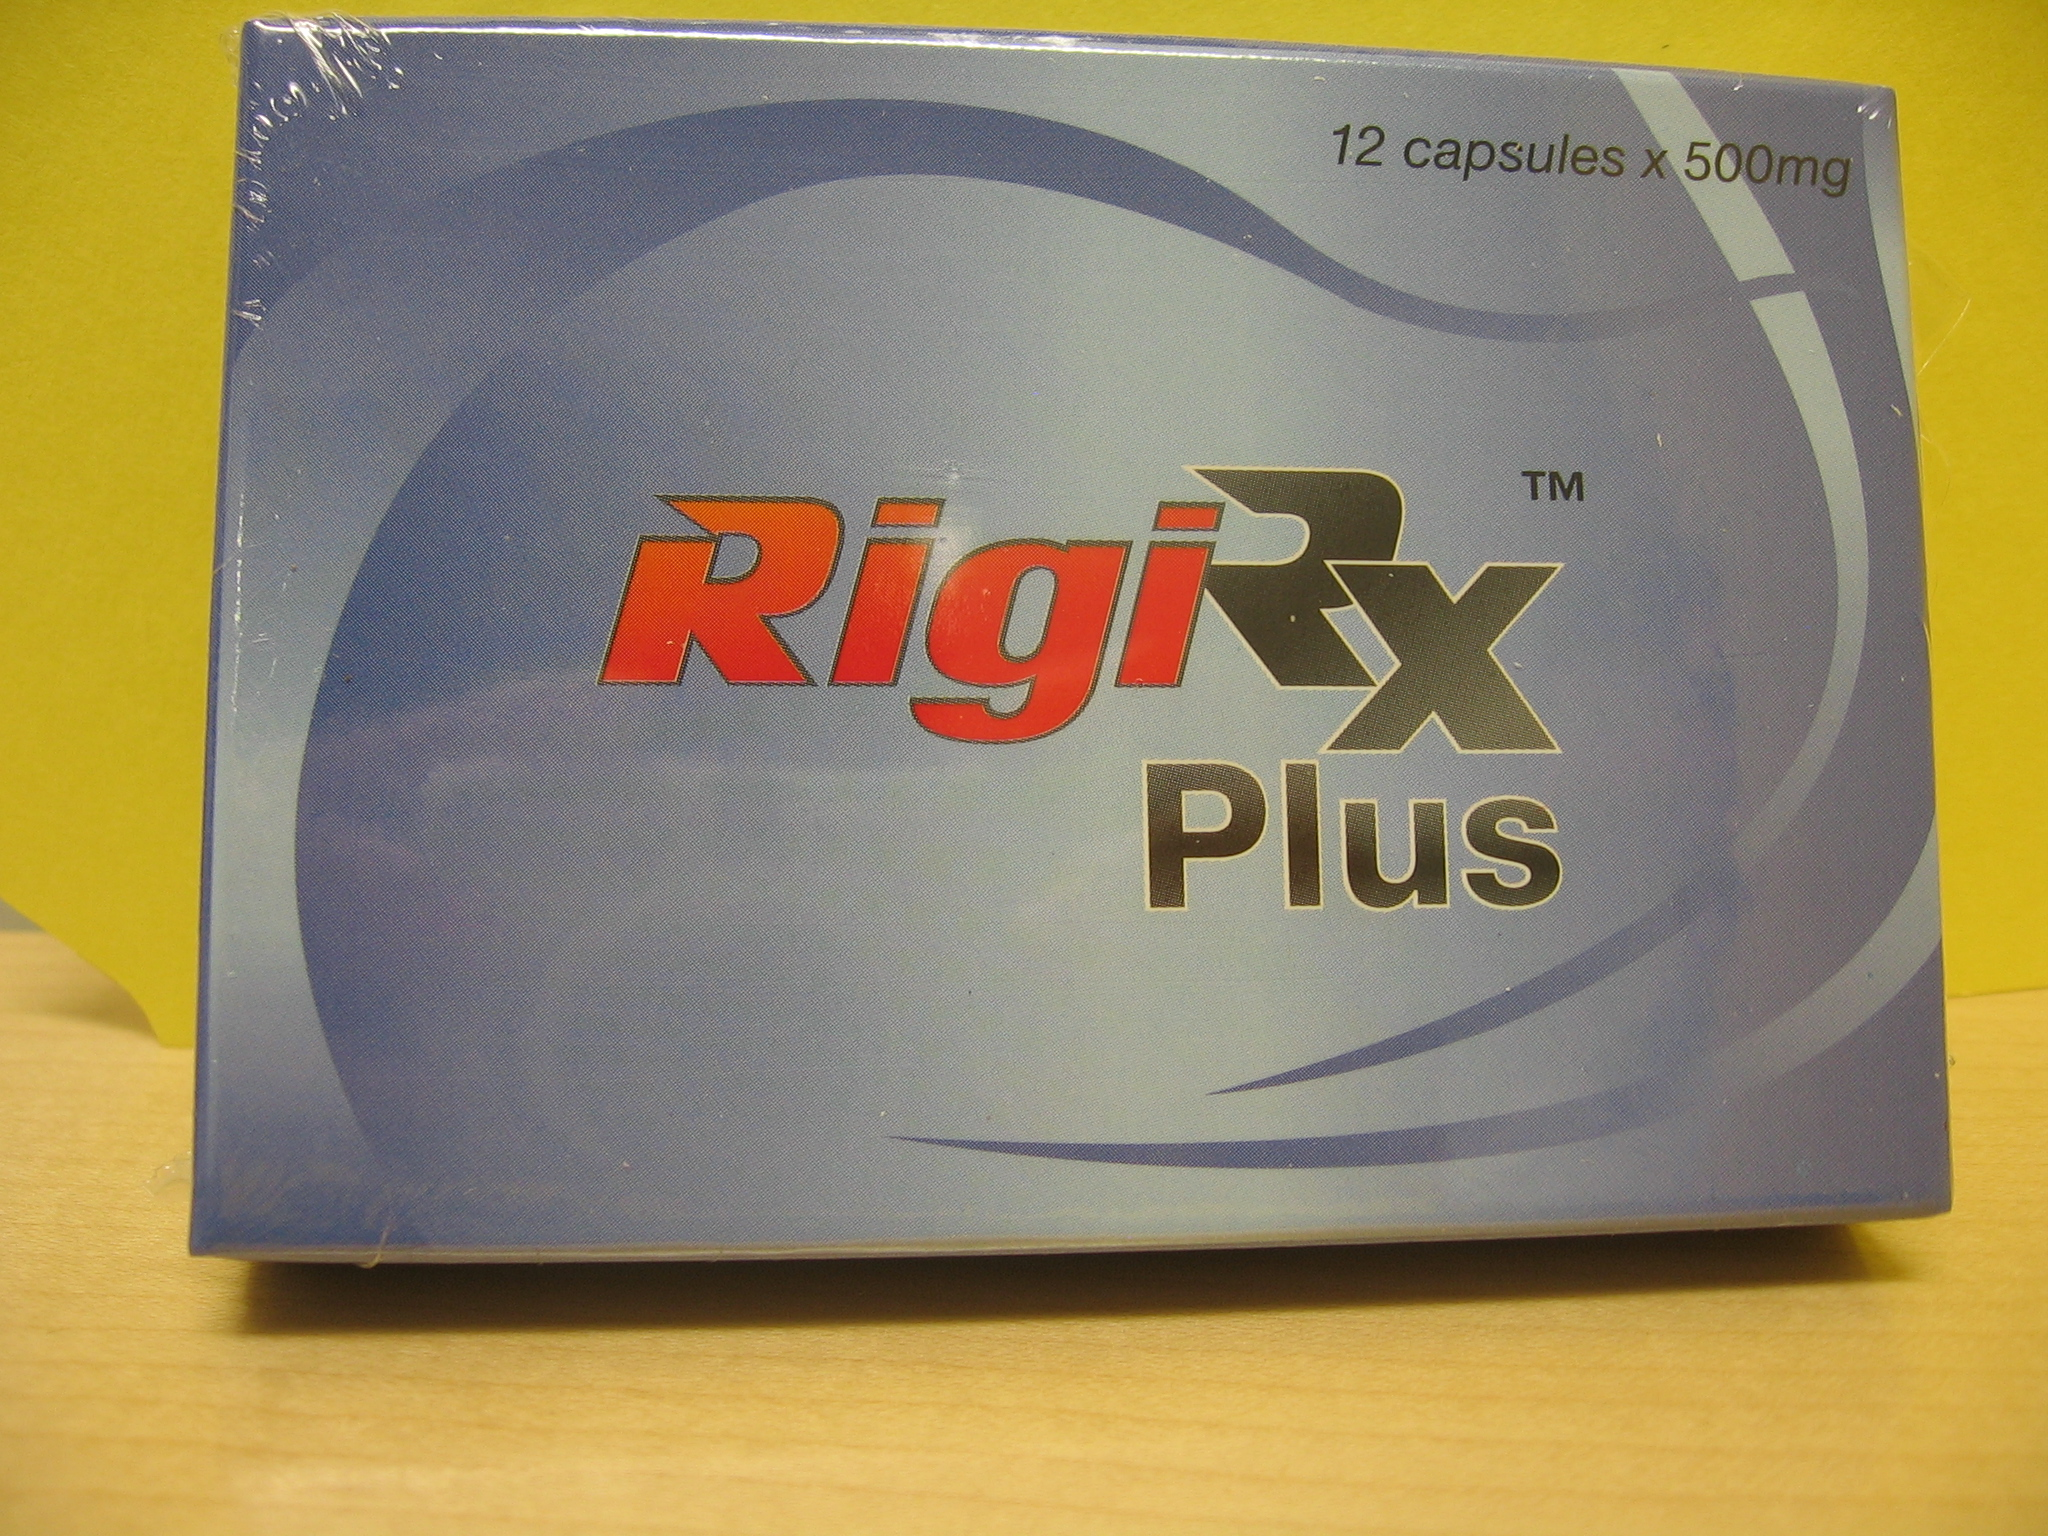 RigiRx label